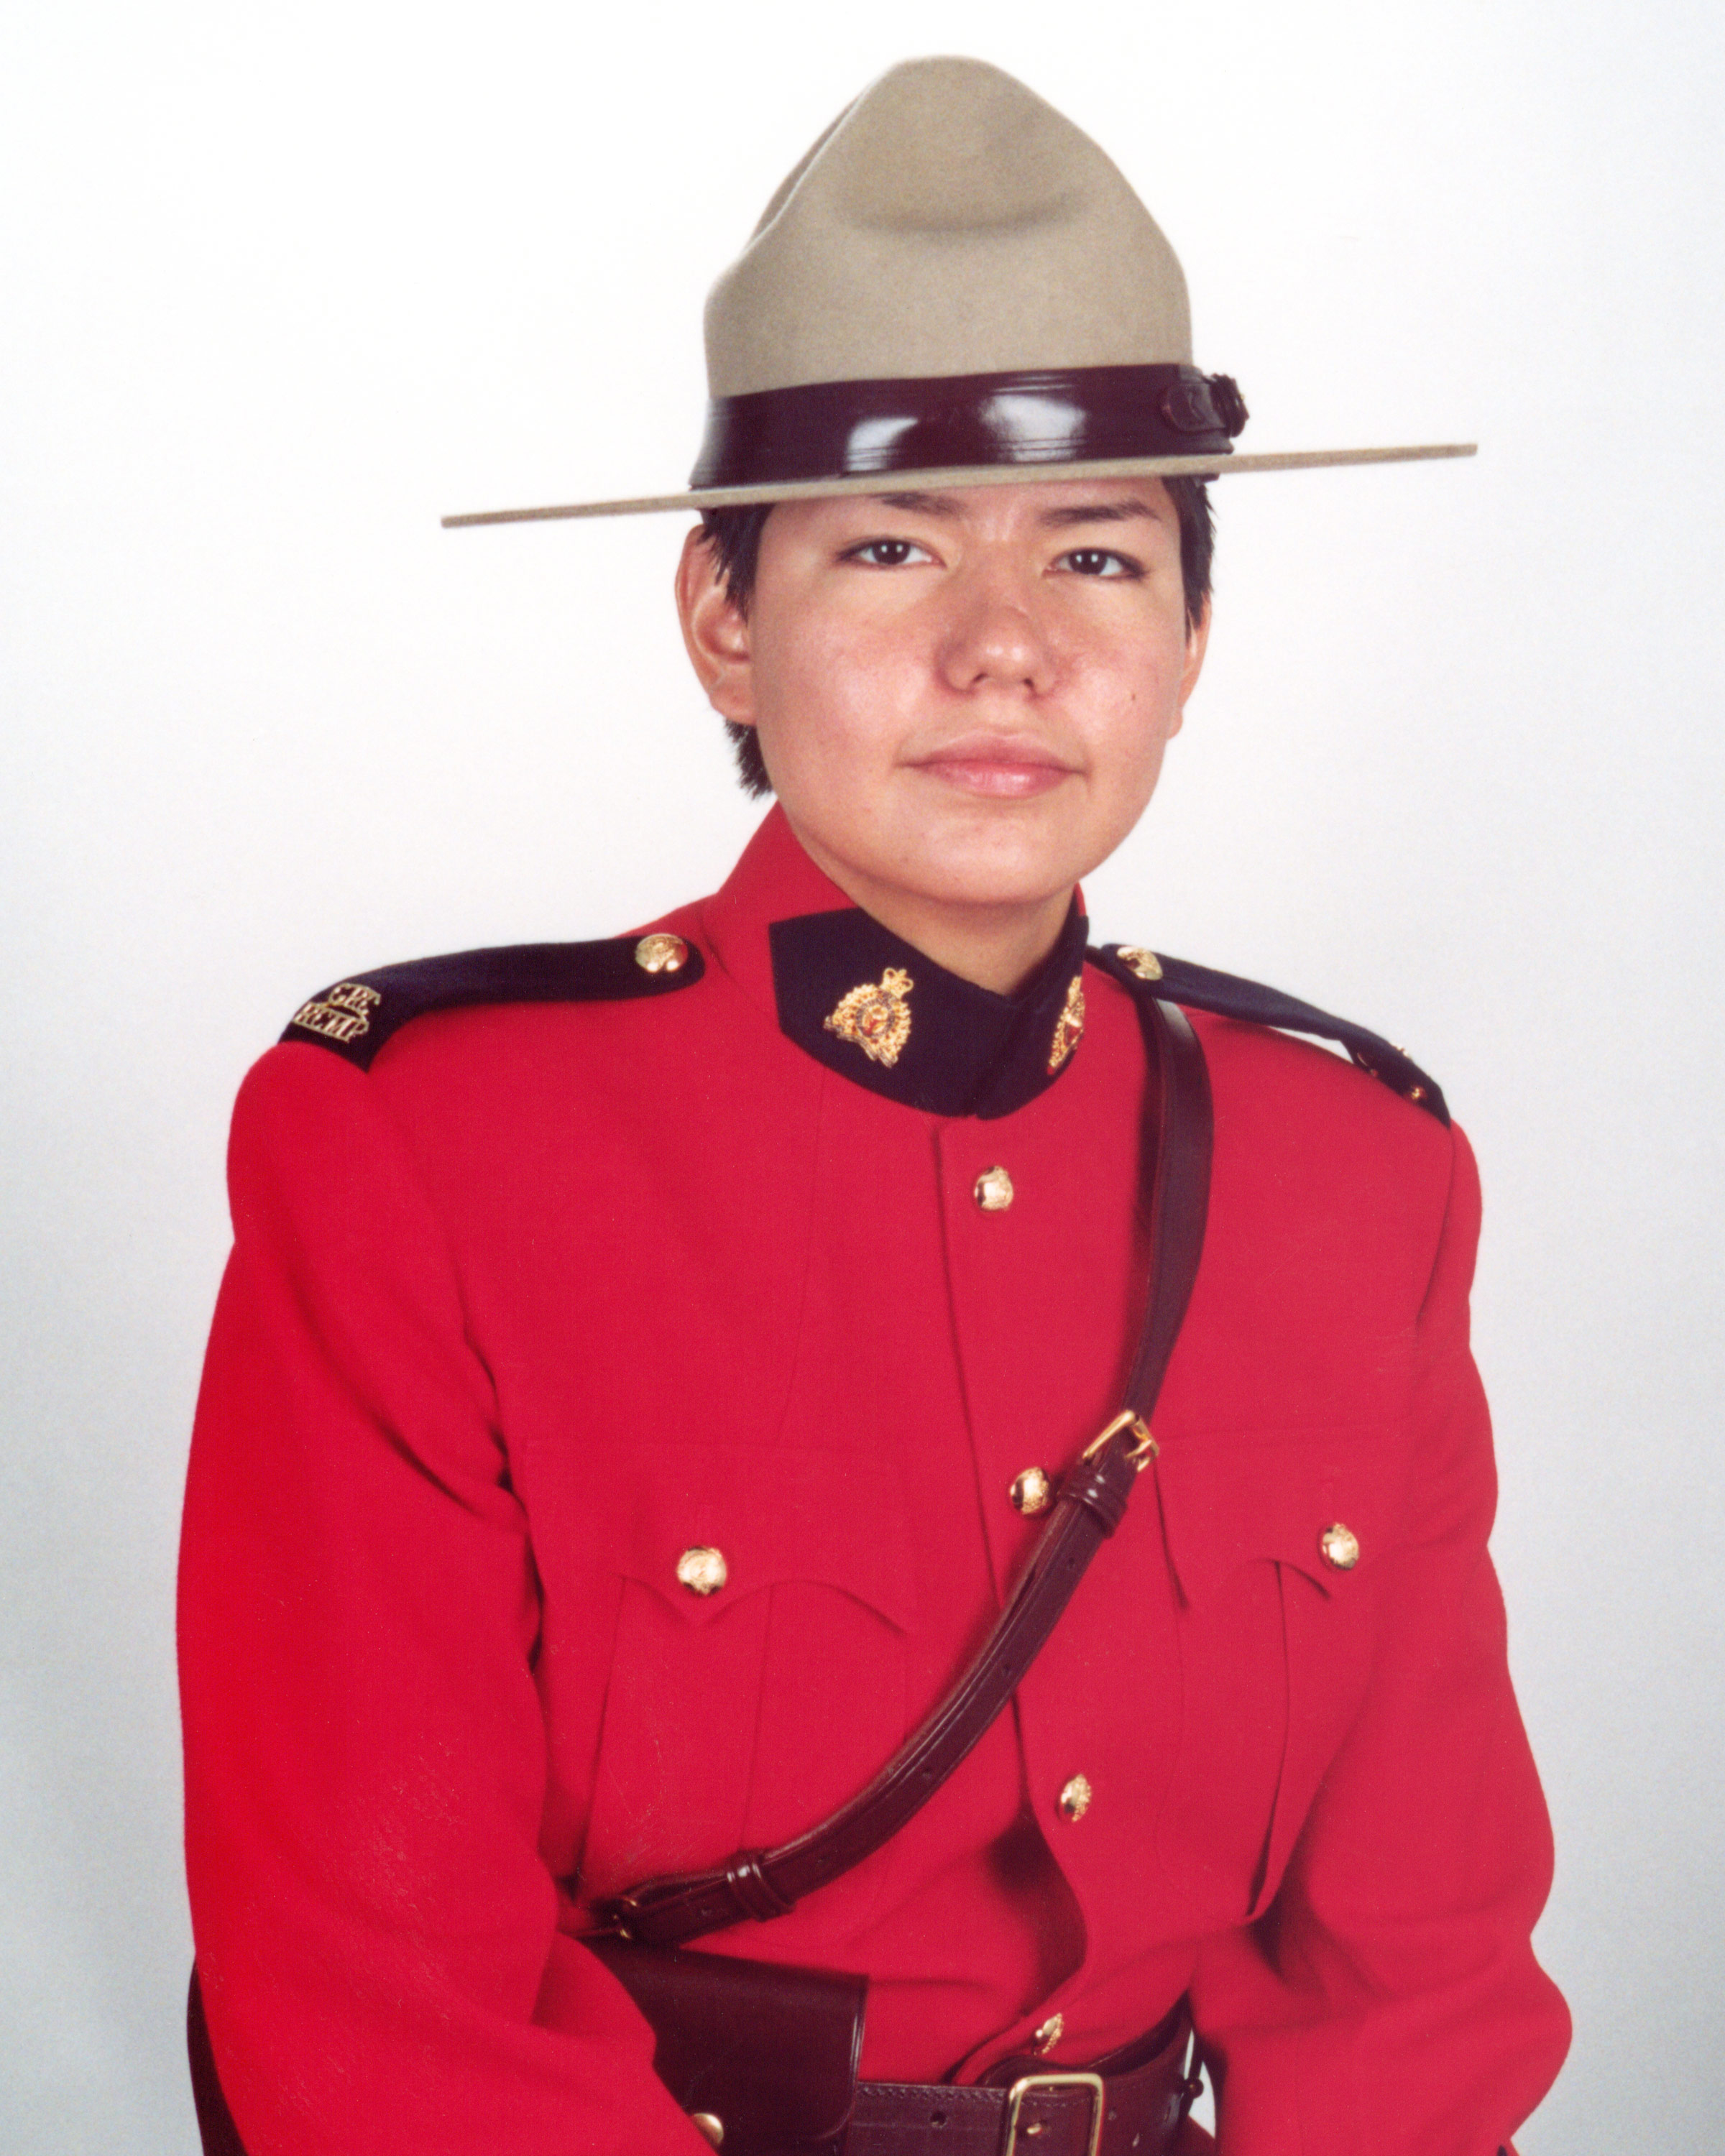 Constable Robin Lynelle Cameron – © Her Majesty the Queen in Right of Canada as represented by the Royal Canadian Mounted Police